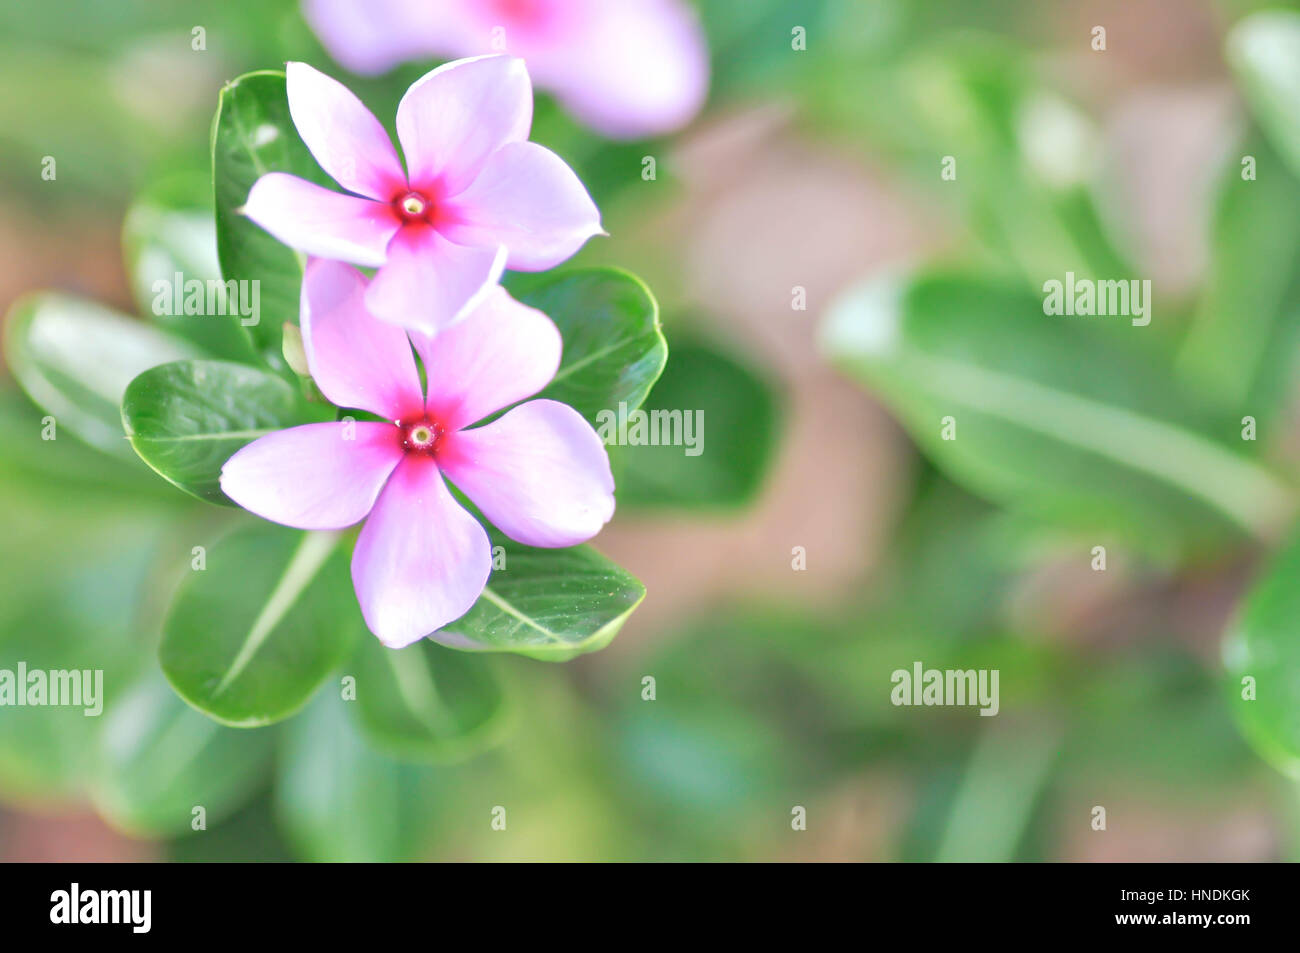 ludwigia adscendens or periwinkle flower Stock Photo